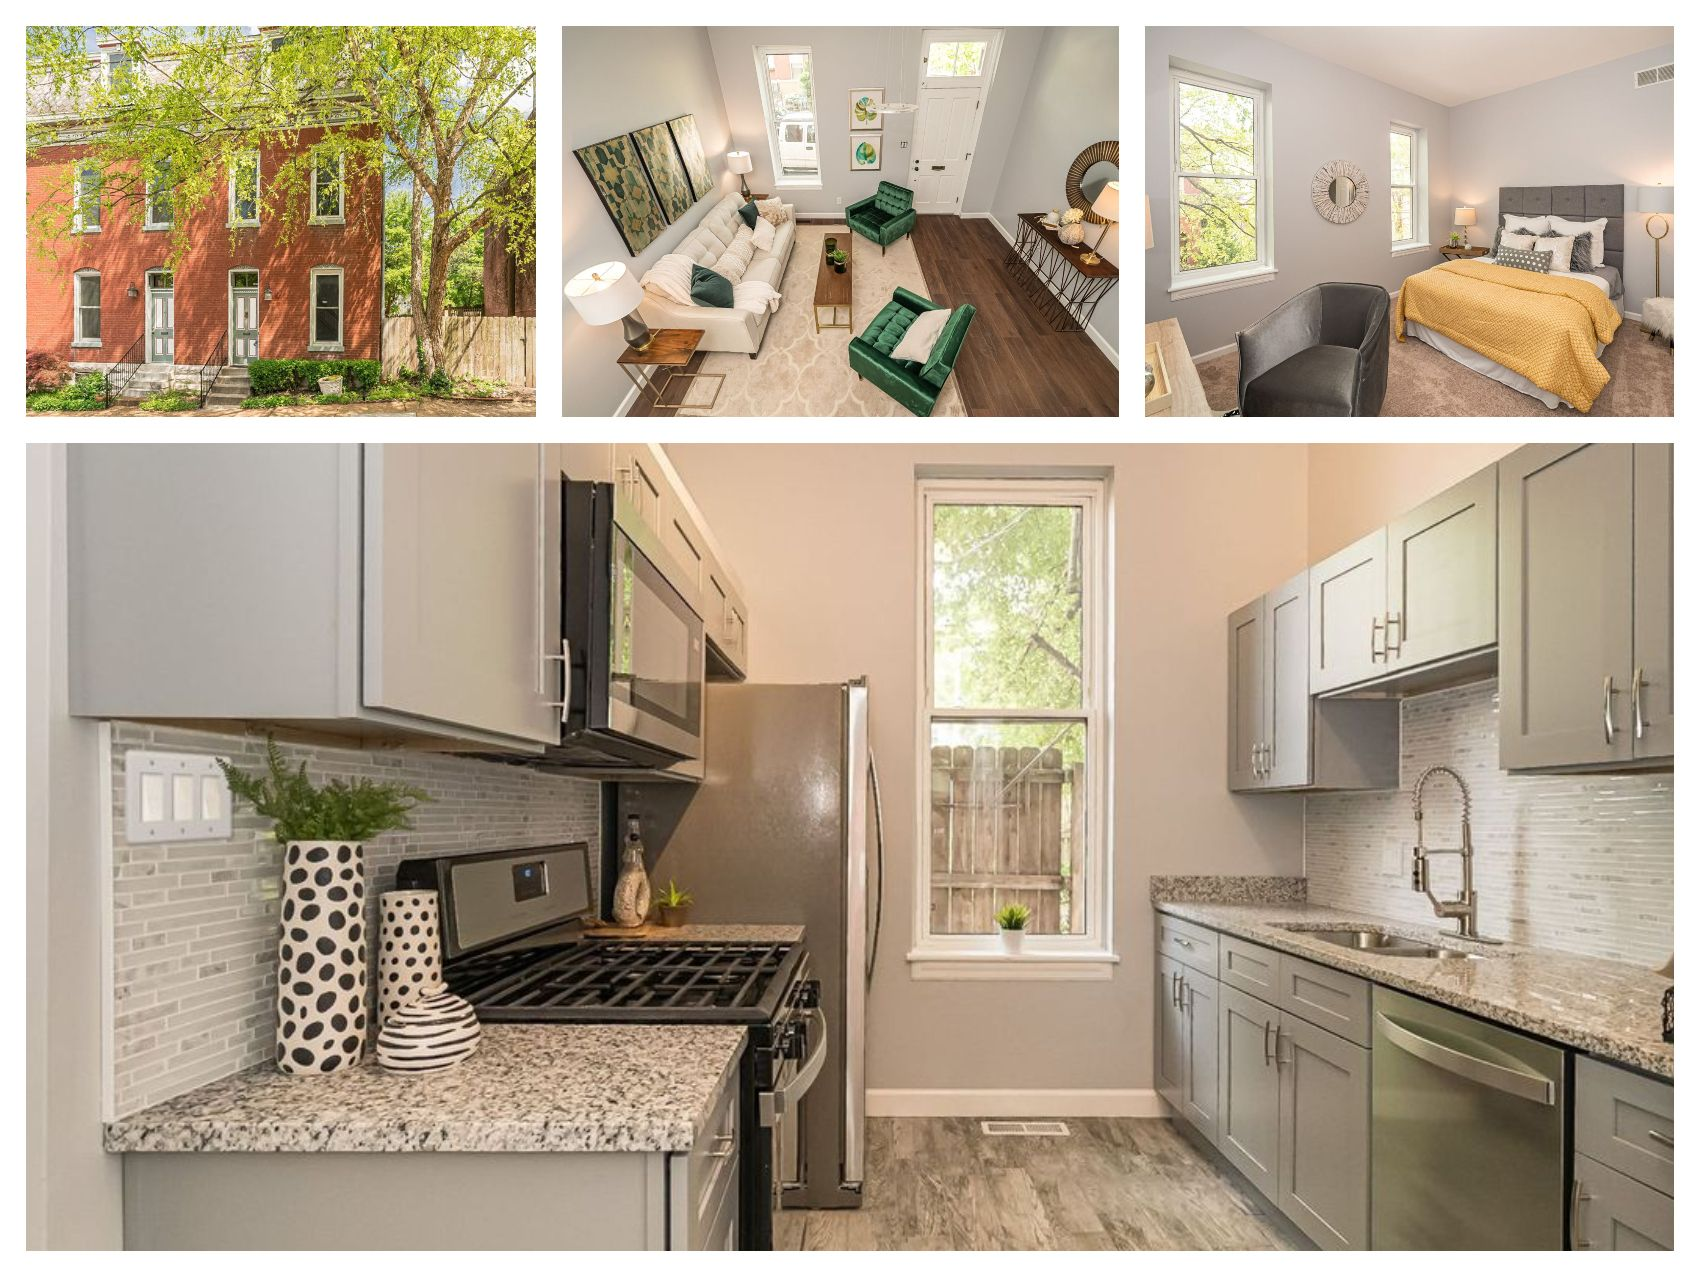 Single Family Homes for Sale at Beautifully Renovated 2 1/2 Story in Historic Lafayette Square 1214 Missouri Avenue St. Louis, Missouri 63104 United States